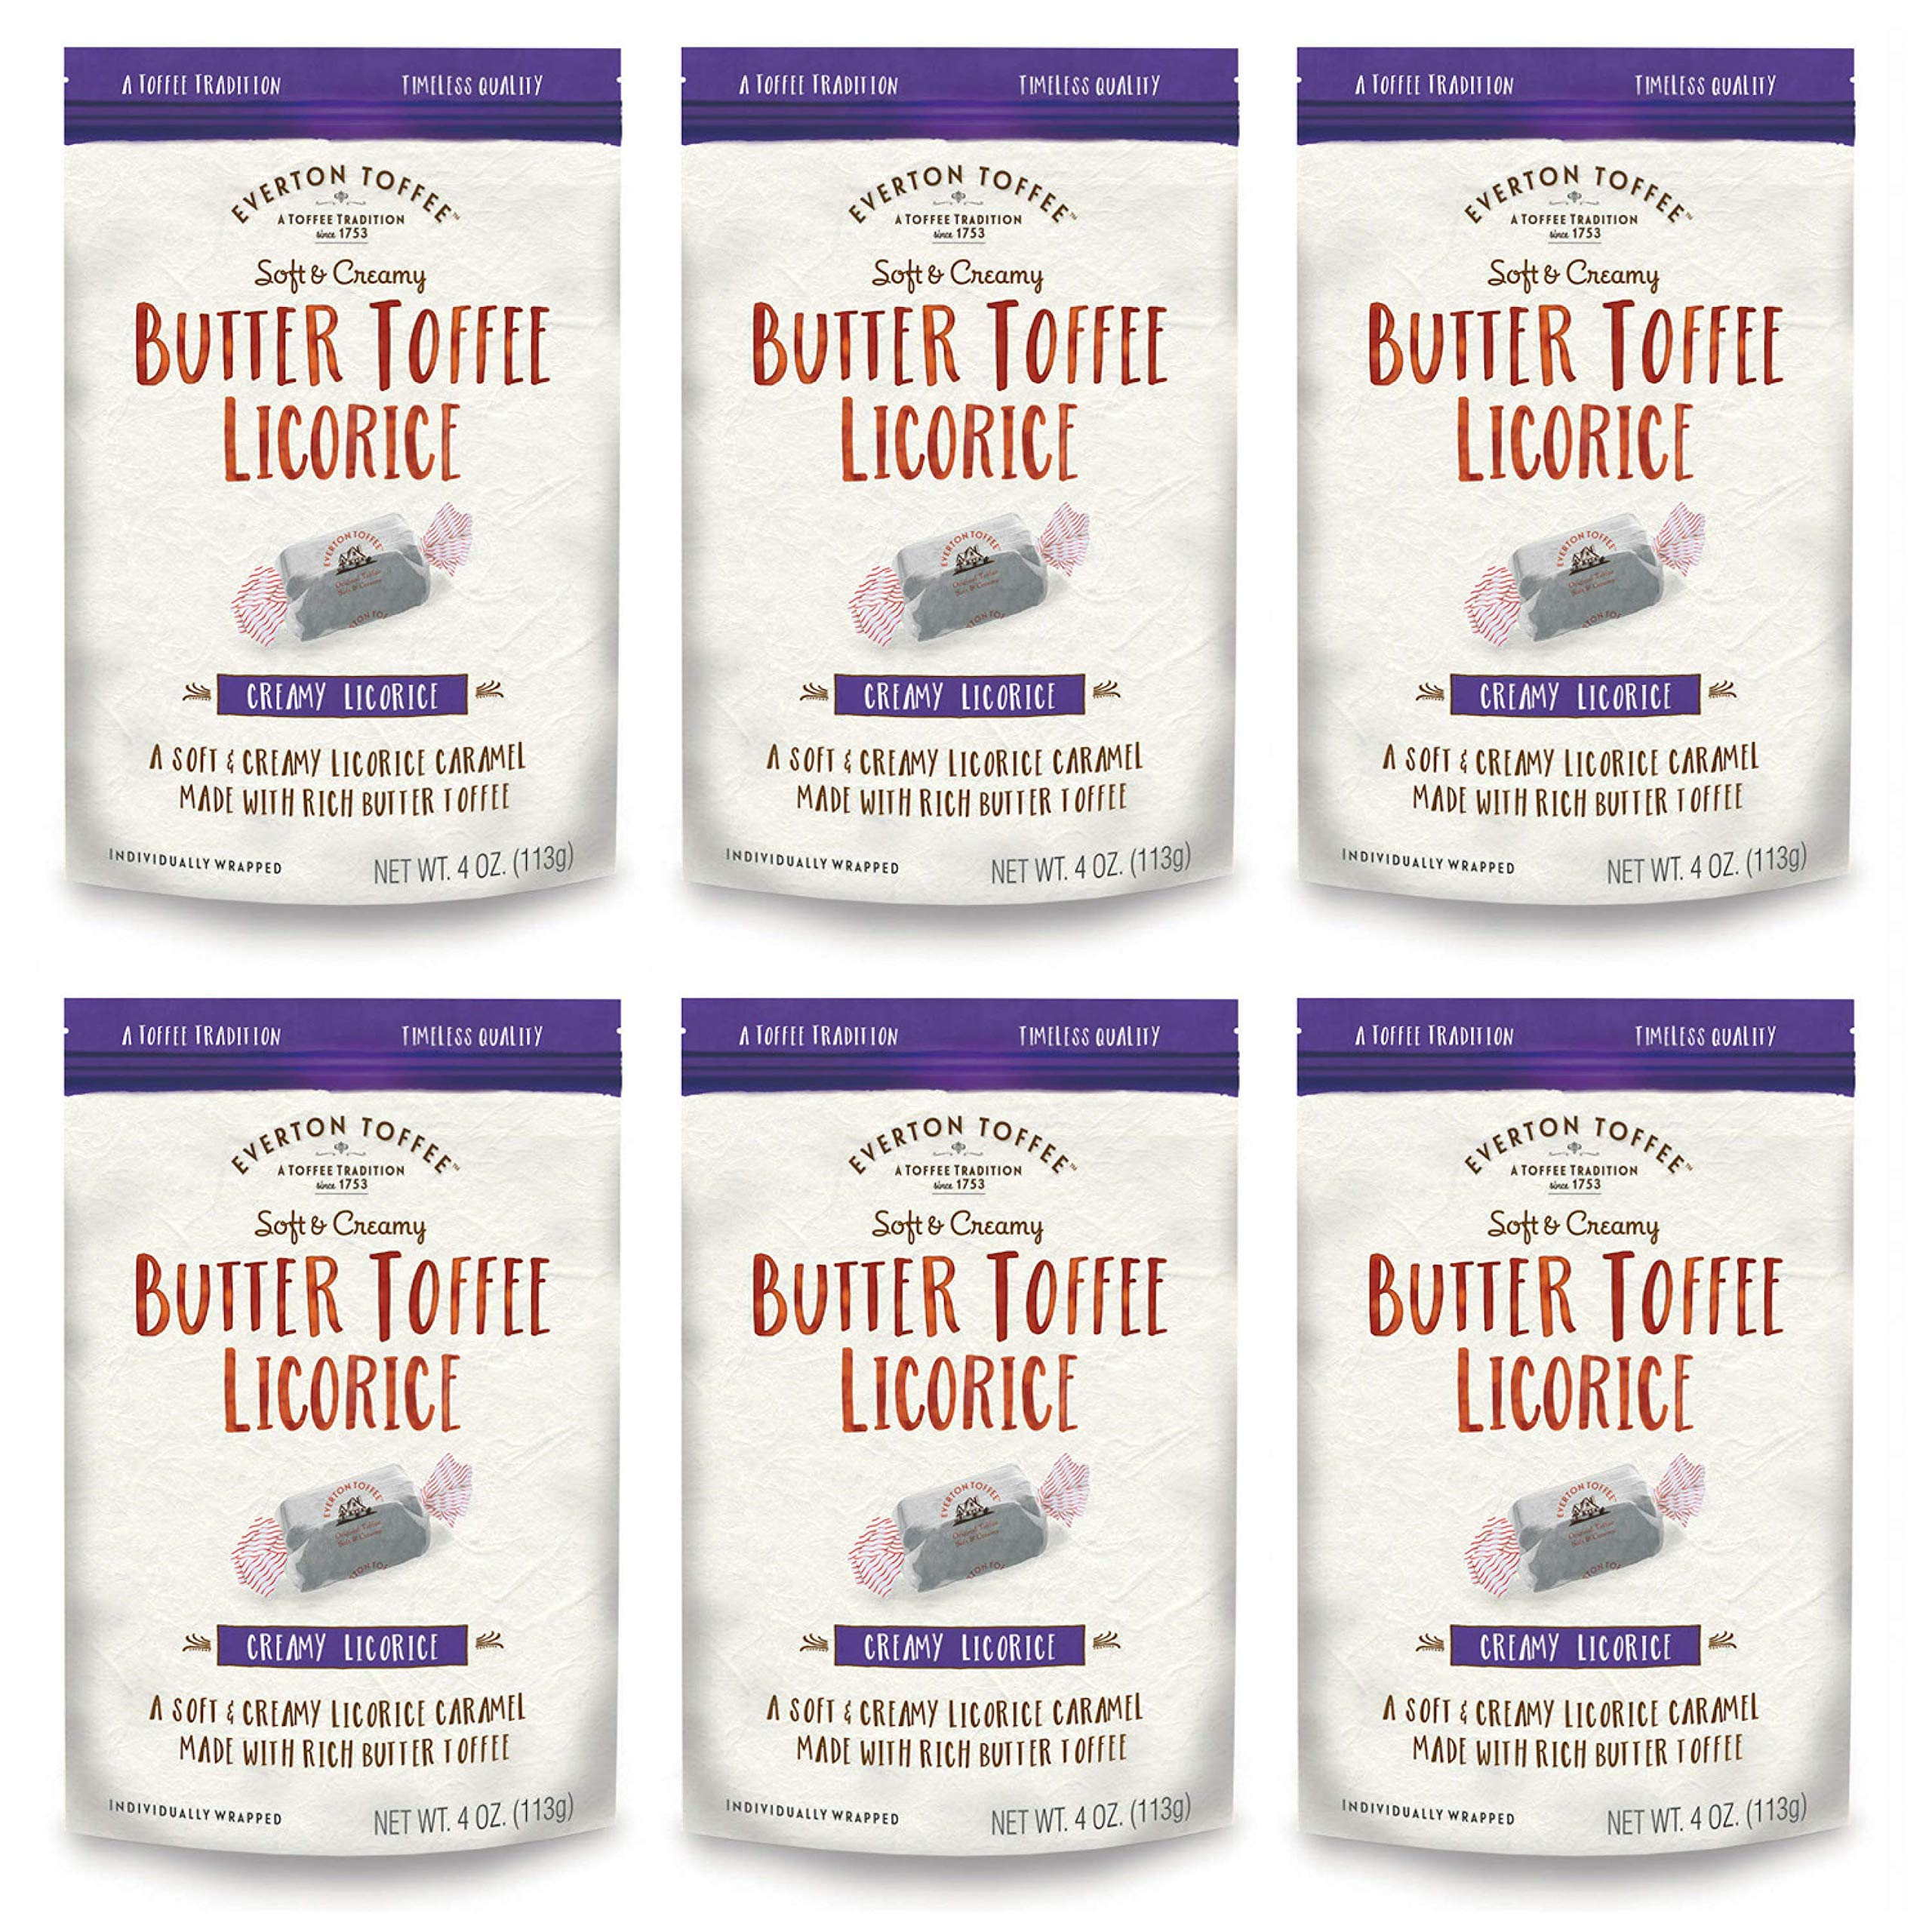 Everton Toffee Butter Toffee Caramels, Licorice Flavor (4 oz. bag, 6-pack). Gourmet, Artisan Soft and Creamy Toffee Caramels, Small Batch Crafted Carmel Candy Treats by Everton Toffee